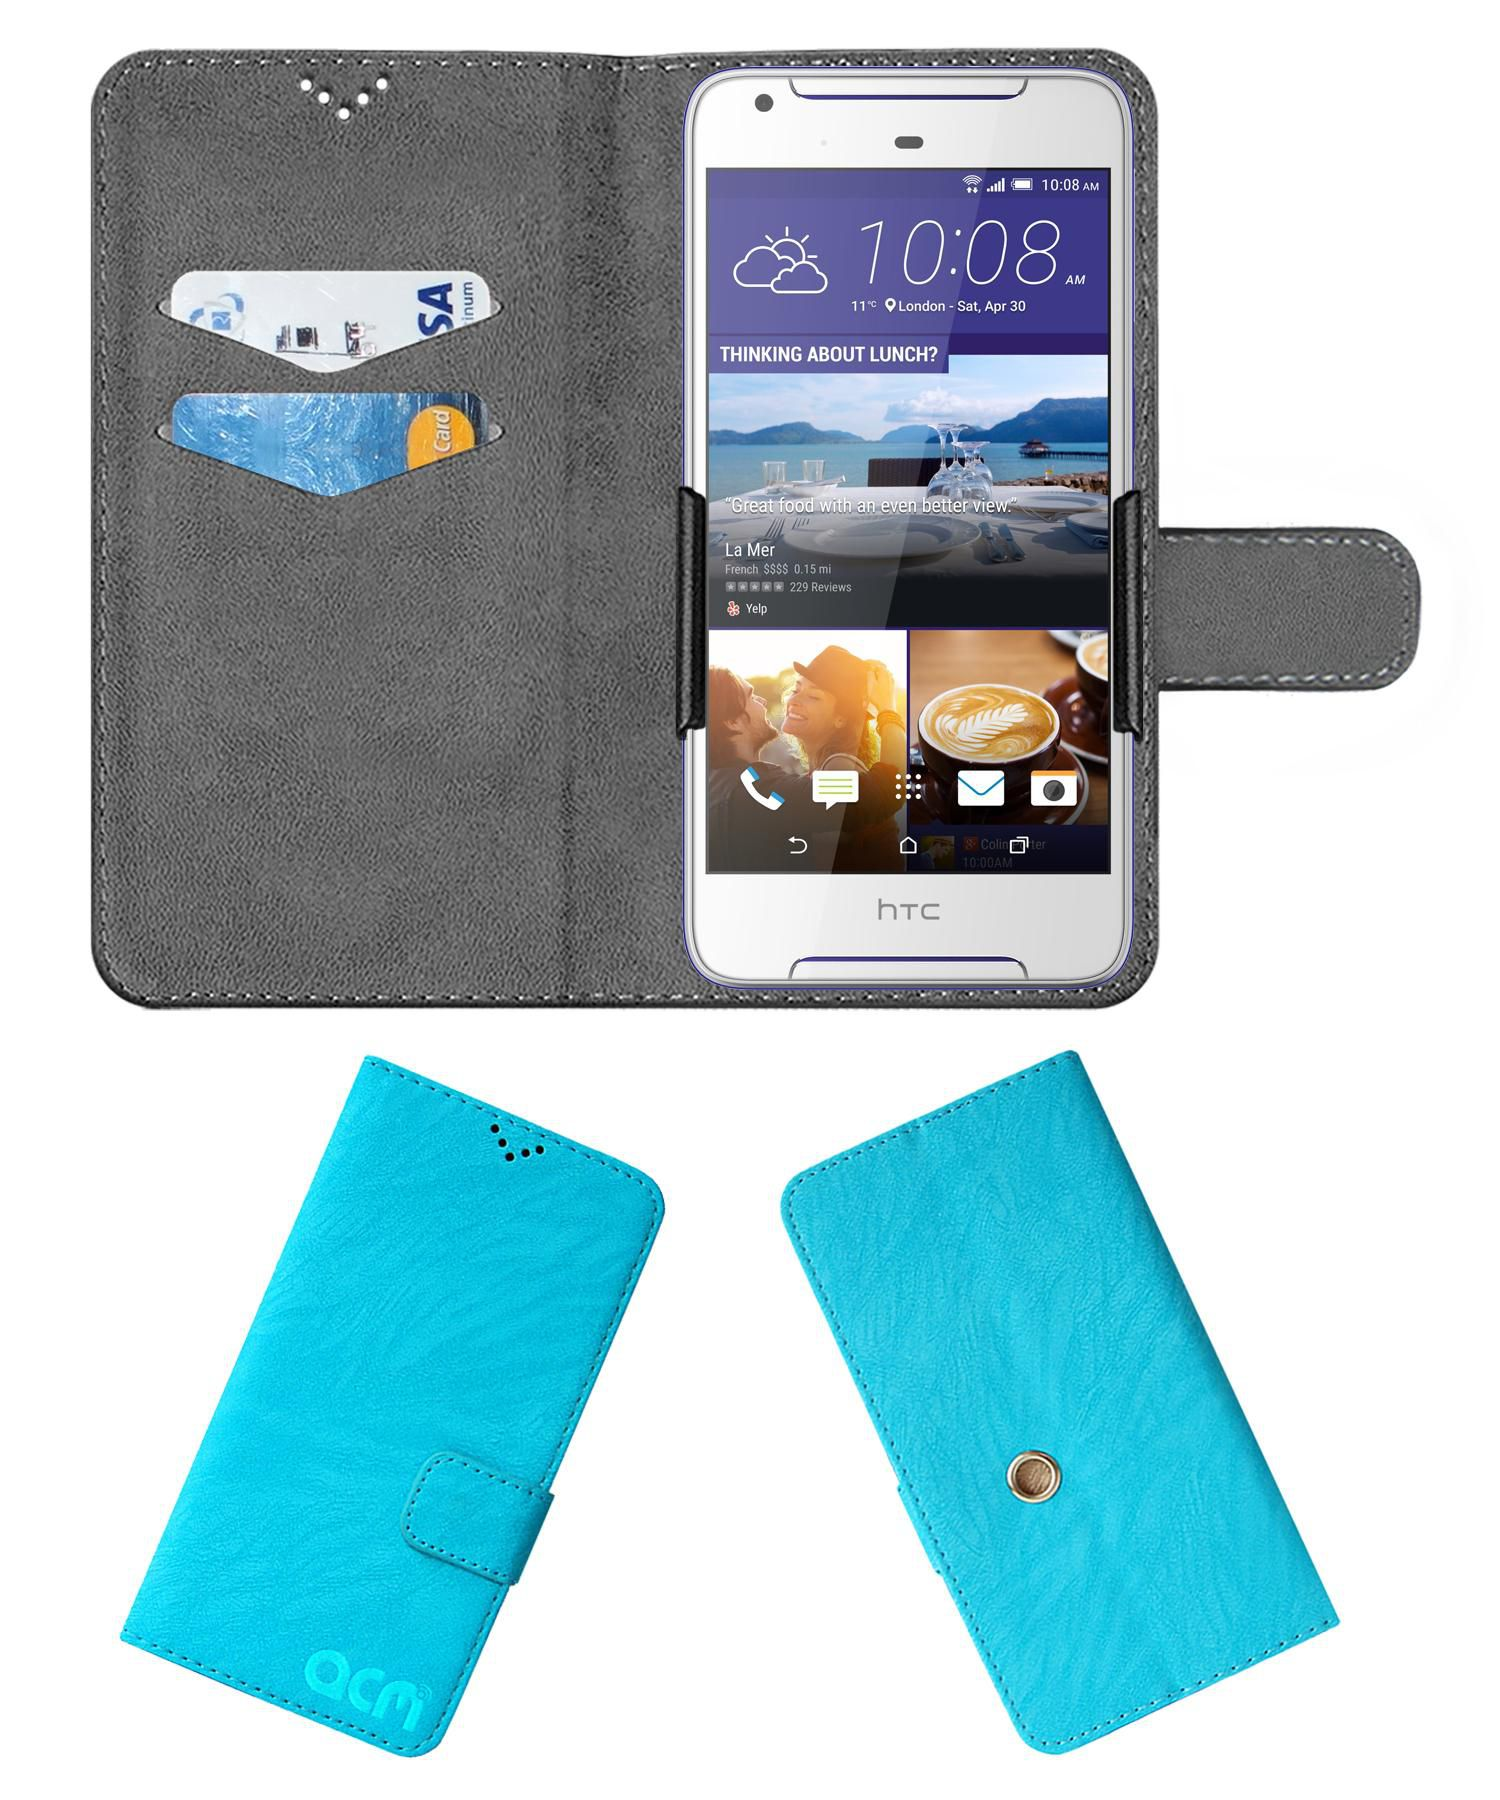 HTC Desire 628 Flip Cover by ACM - Blue Clip holder to hold your mobile securely